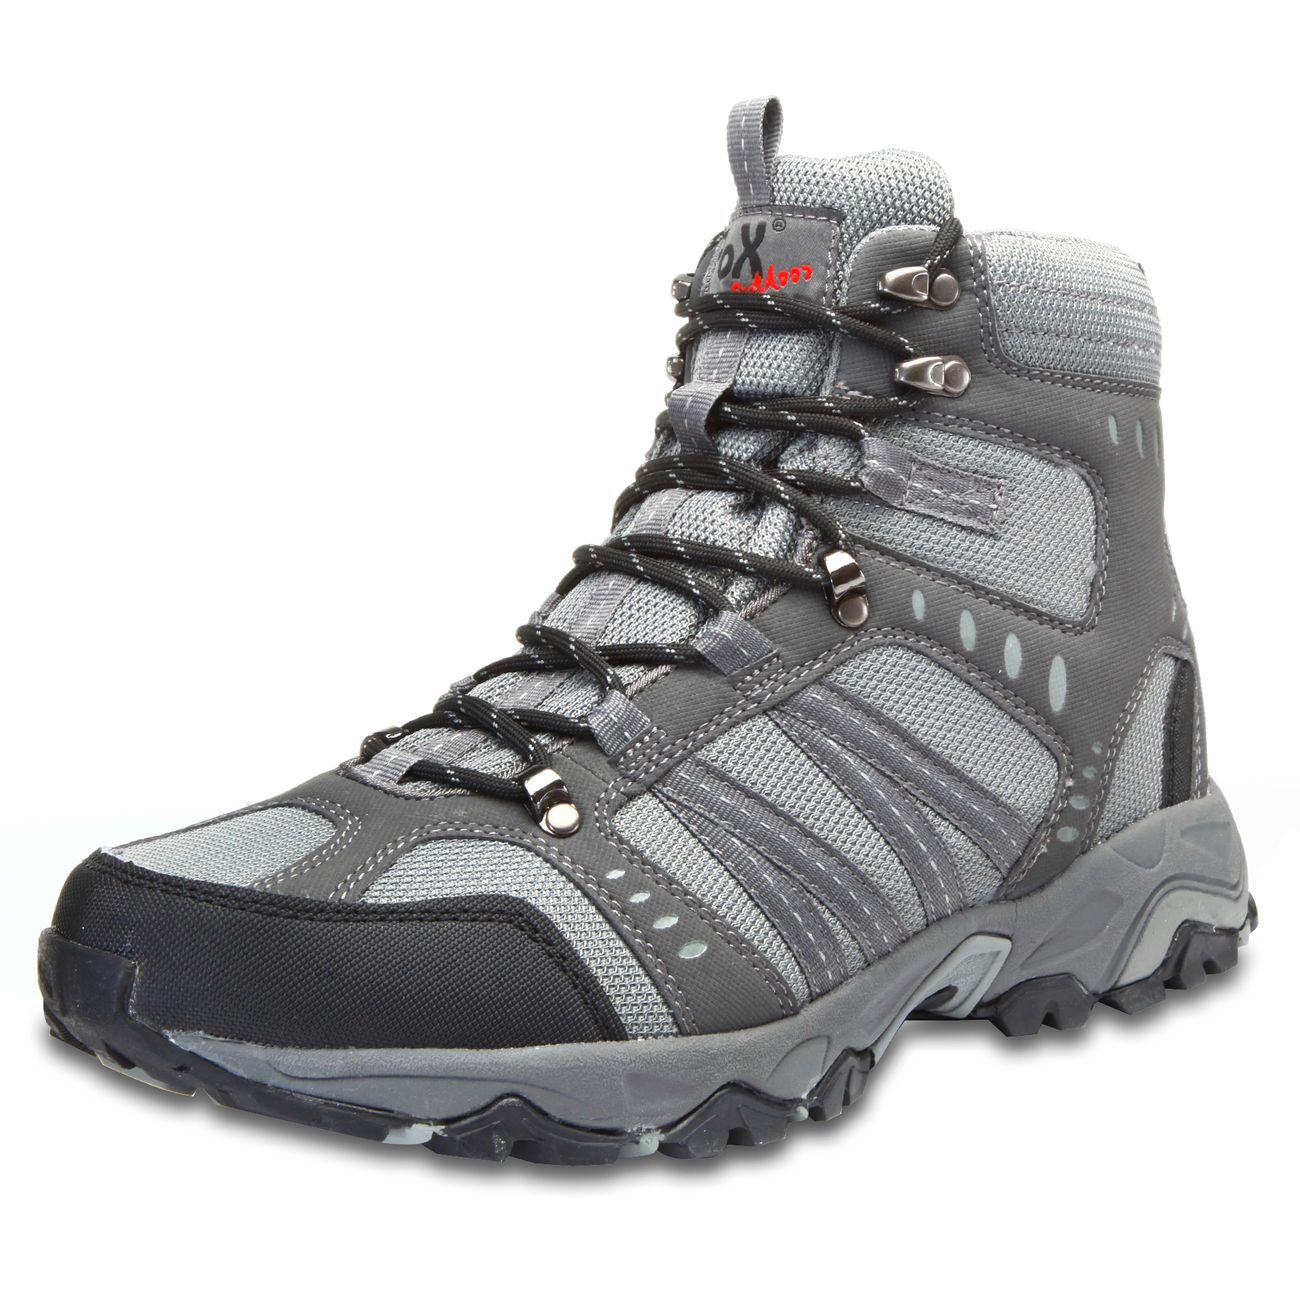 Fox Outdoor Trekkingschuh Mountain High grau 6